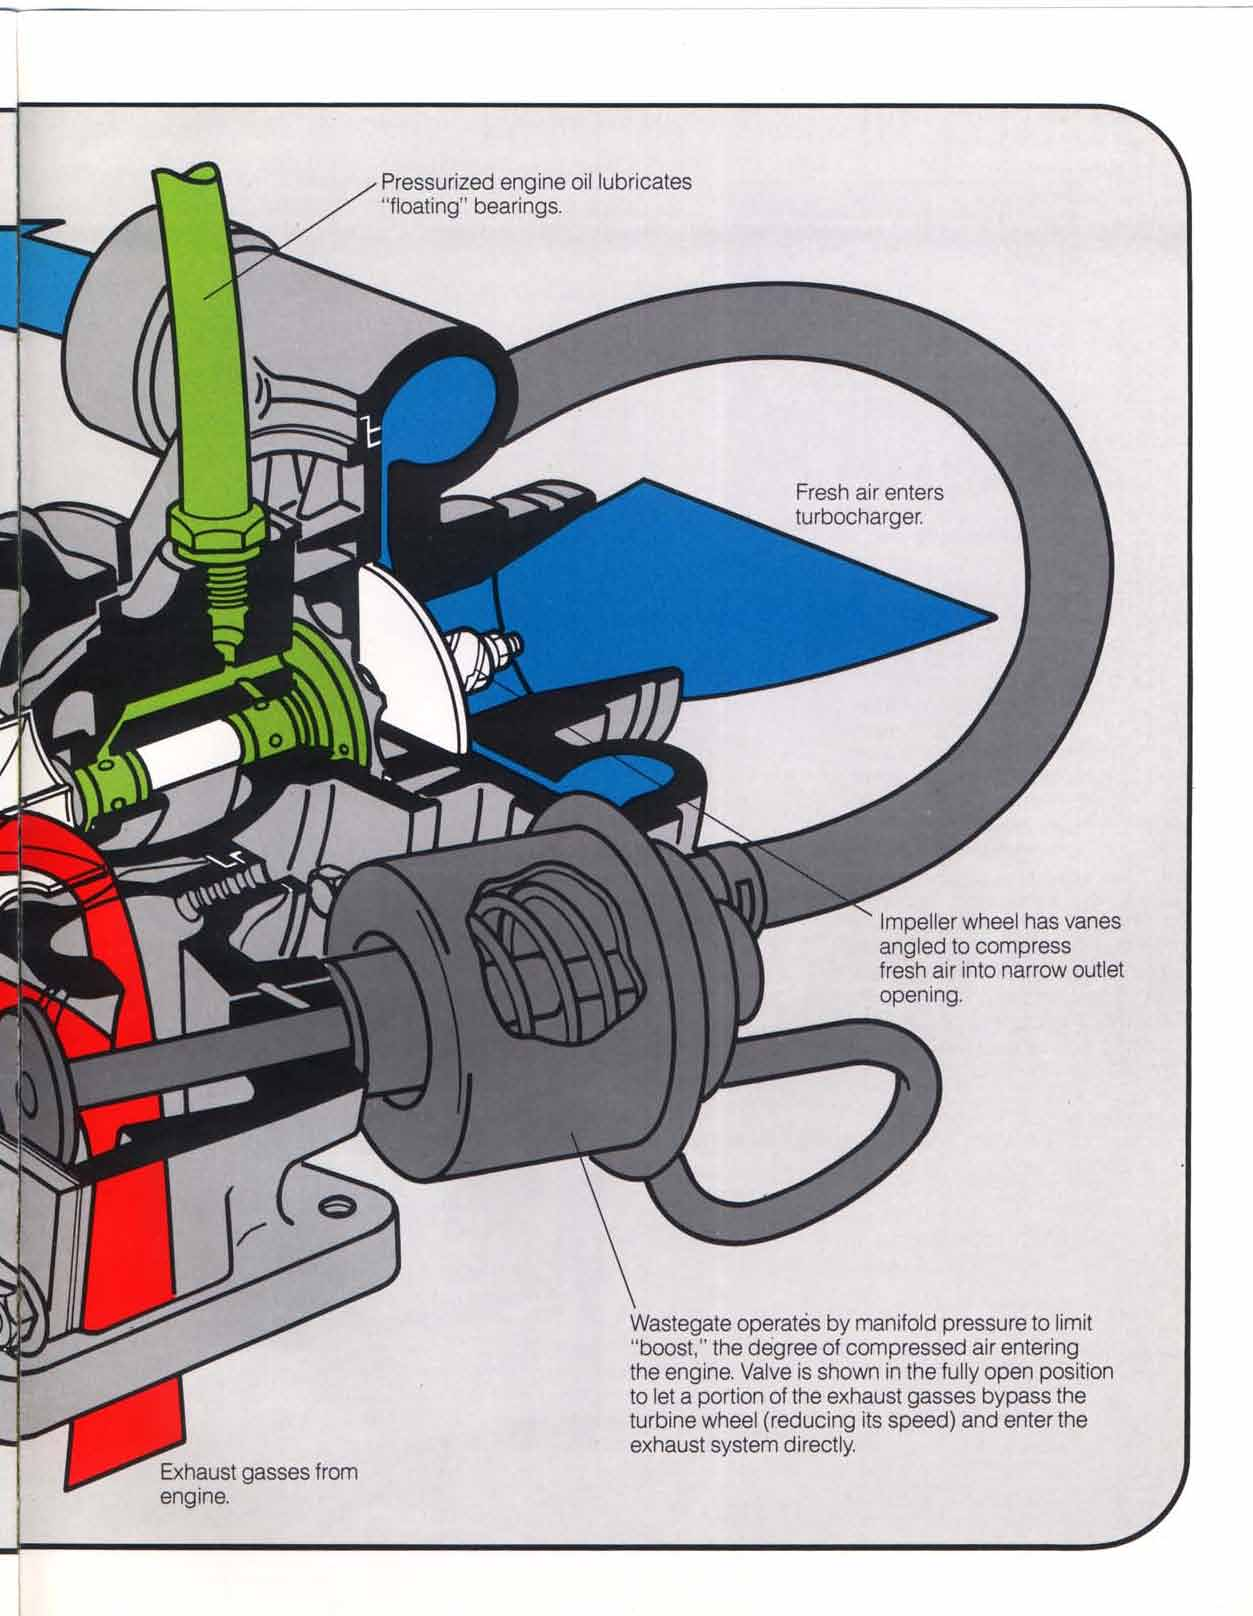 Vw Archives 1983 Jetta Brochure 1996 Engine Diagram Copyright 2018 Everett Barnes All Rights Reserved Not Affiliated With Or Sponsored By Volkswagen Of America Forum Powered